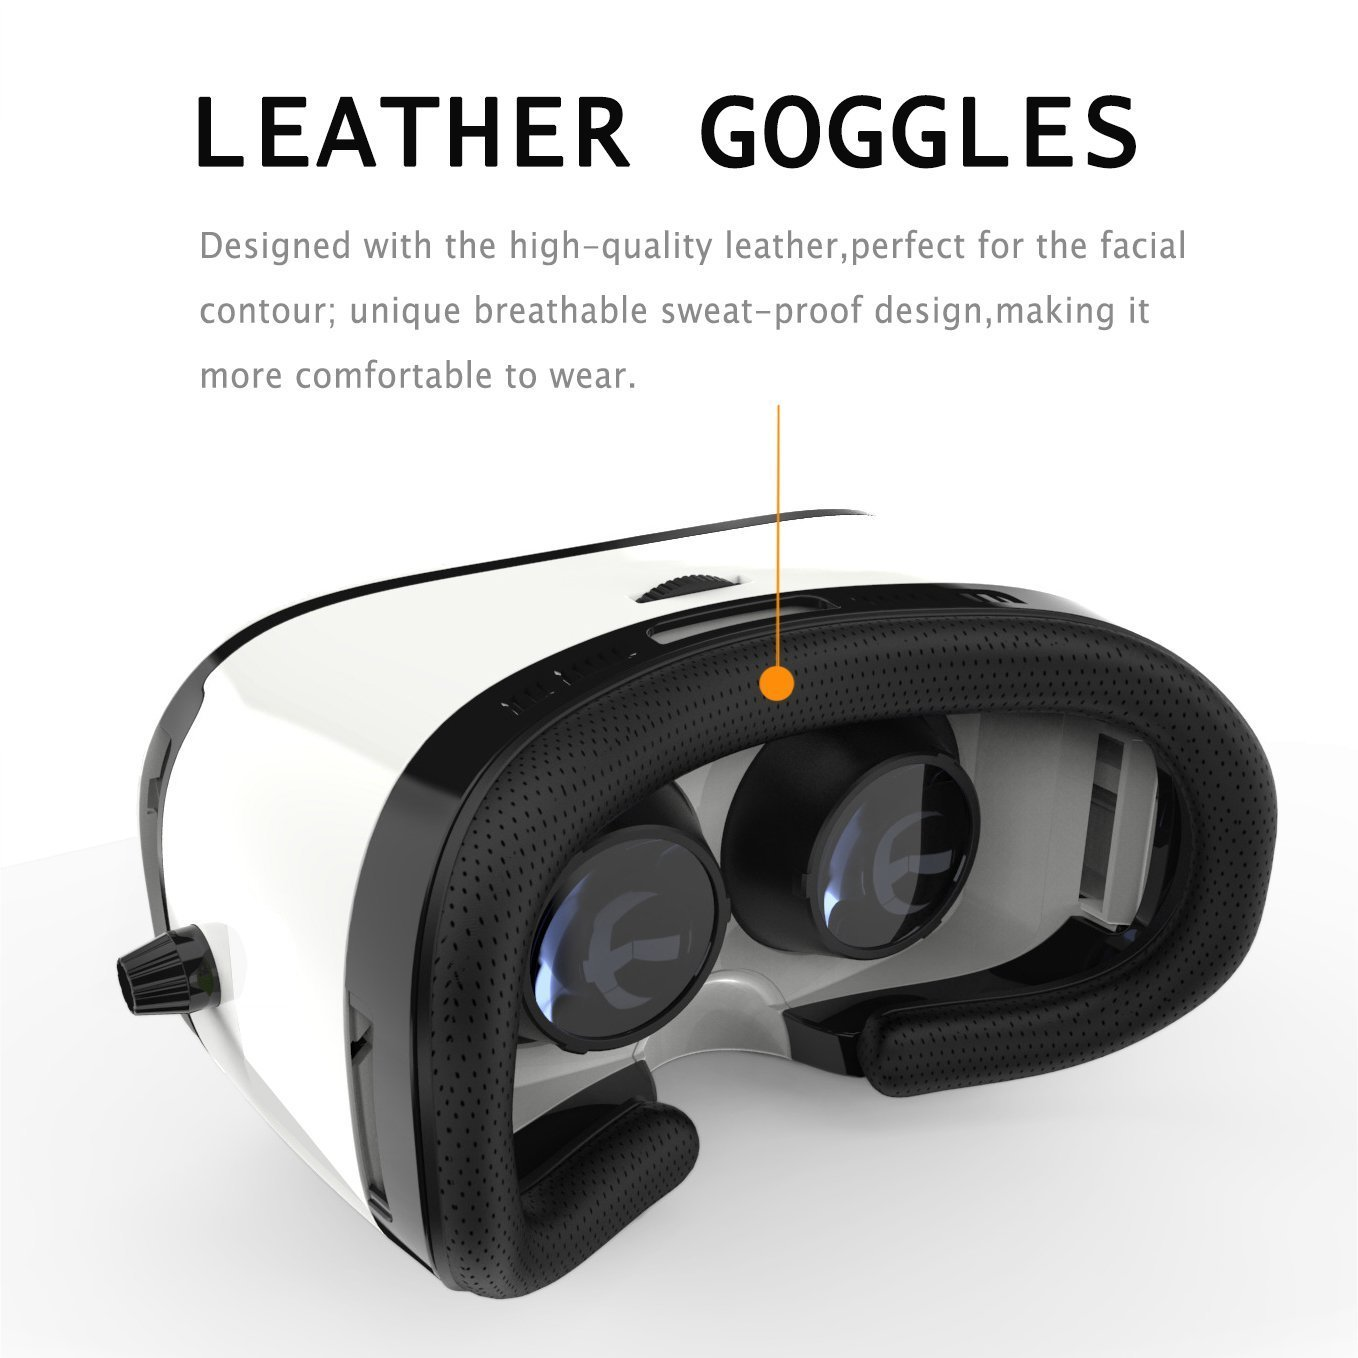 Pasonomi VR Glasses - 3D Virtual Reality Headset for iPhone 7/7 Plus/6s/6 plus/6/5, Samsung Galaxy, Huawei, Google, Moto & all Android Smartphone by PASONOMI (Image #5)